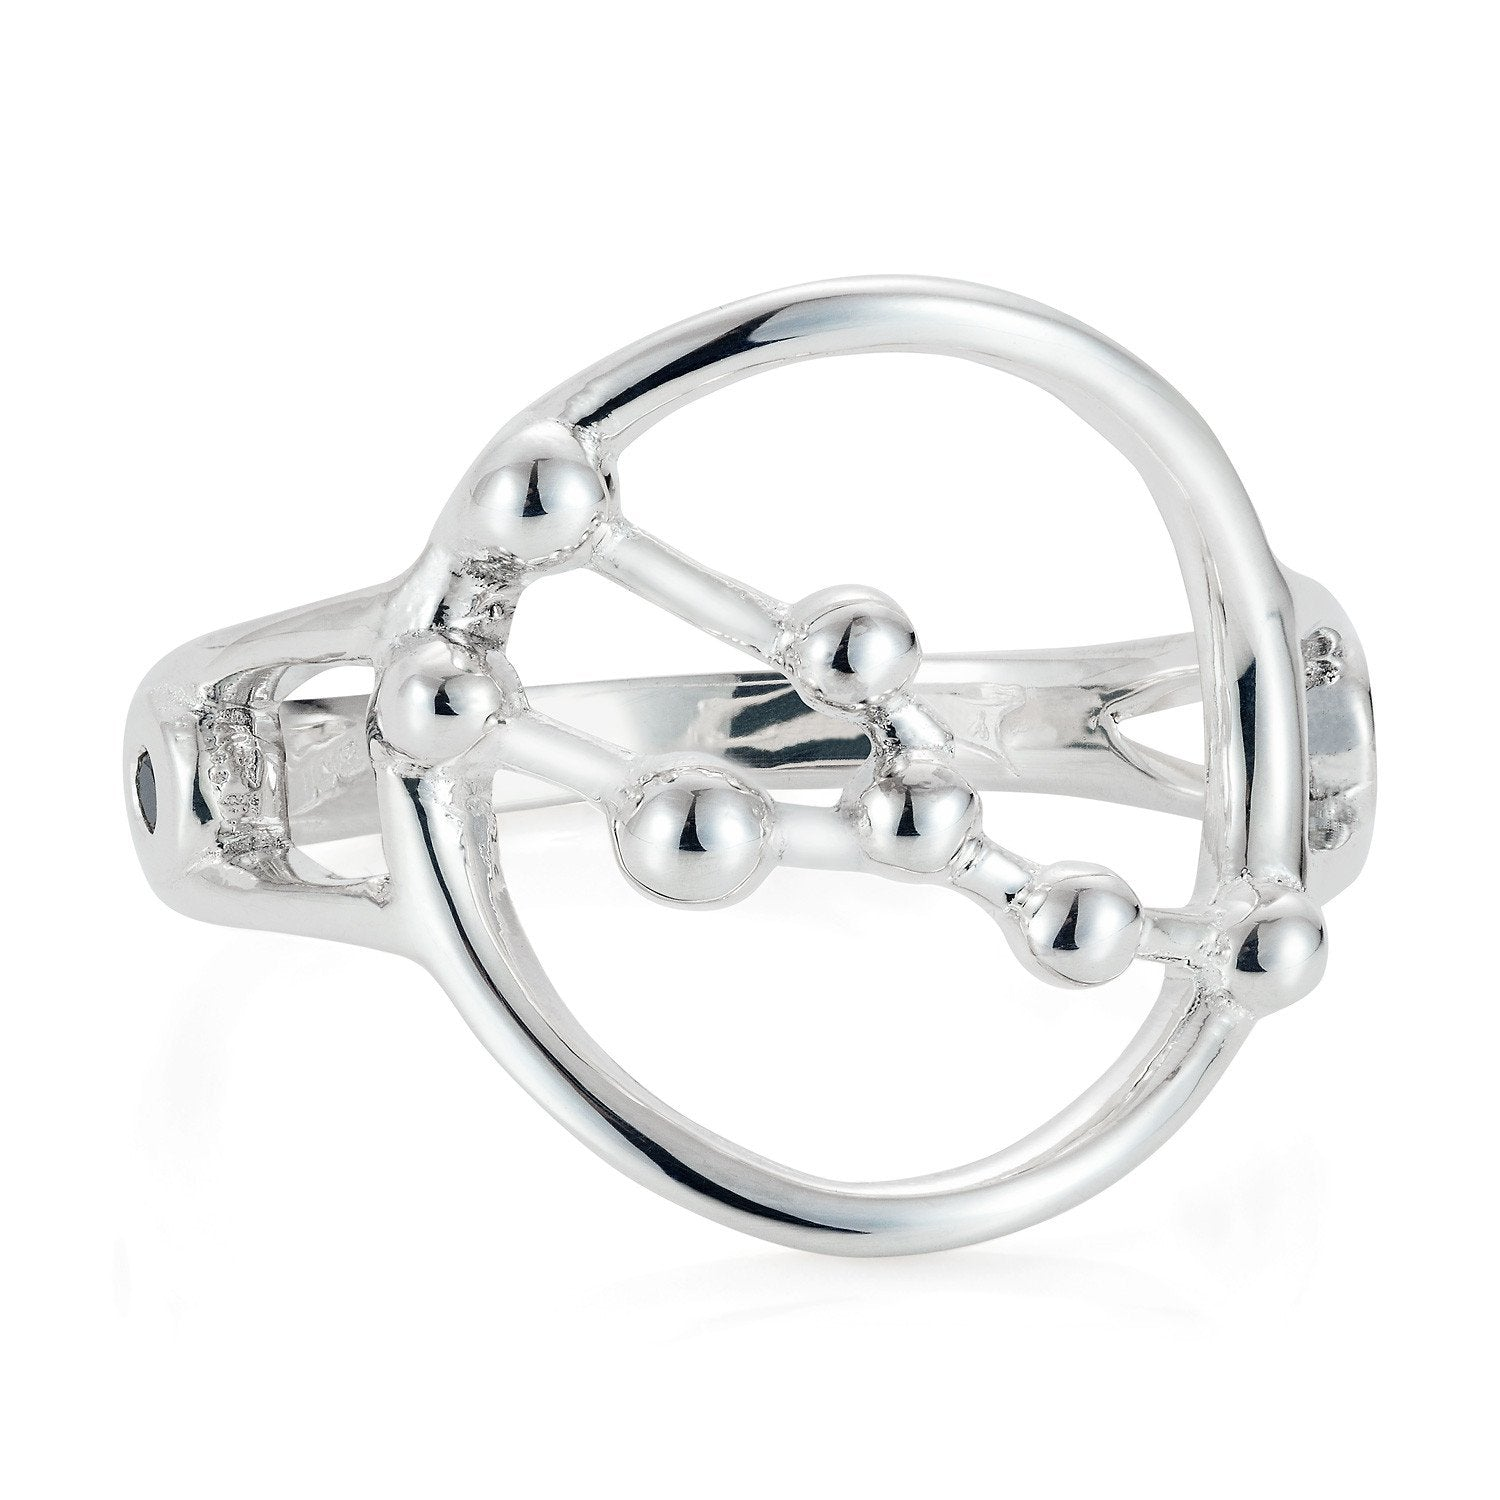 Taurus star sign astrology Ring